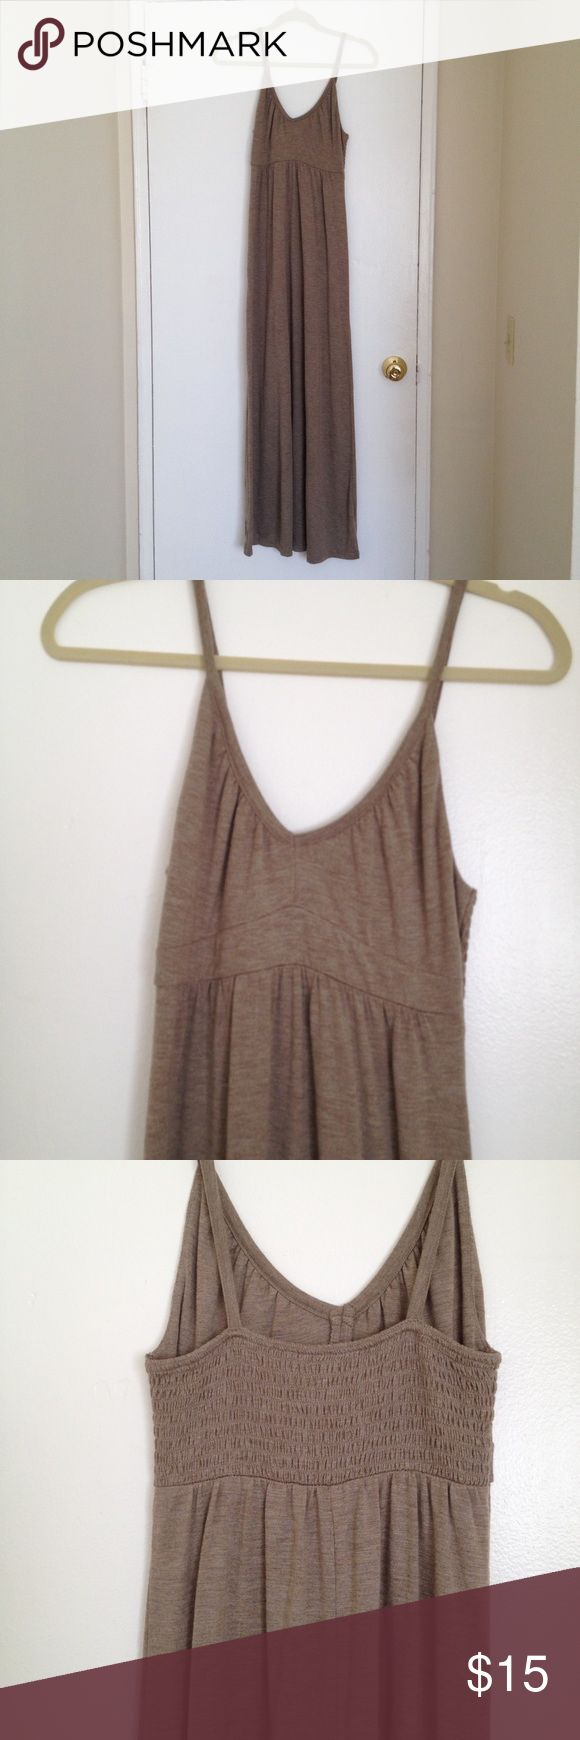 Oatmeal/ tan Old Navy maxi dress Oatmeal/ tan Old Navy maxi dress. This dress is low cut and long. The material is sensational and the dress flows well. Never worn but don't have tags. Old Navy Dresses Maxi